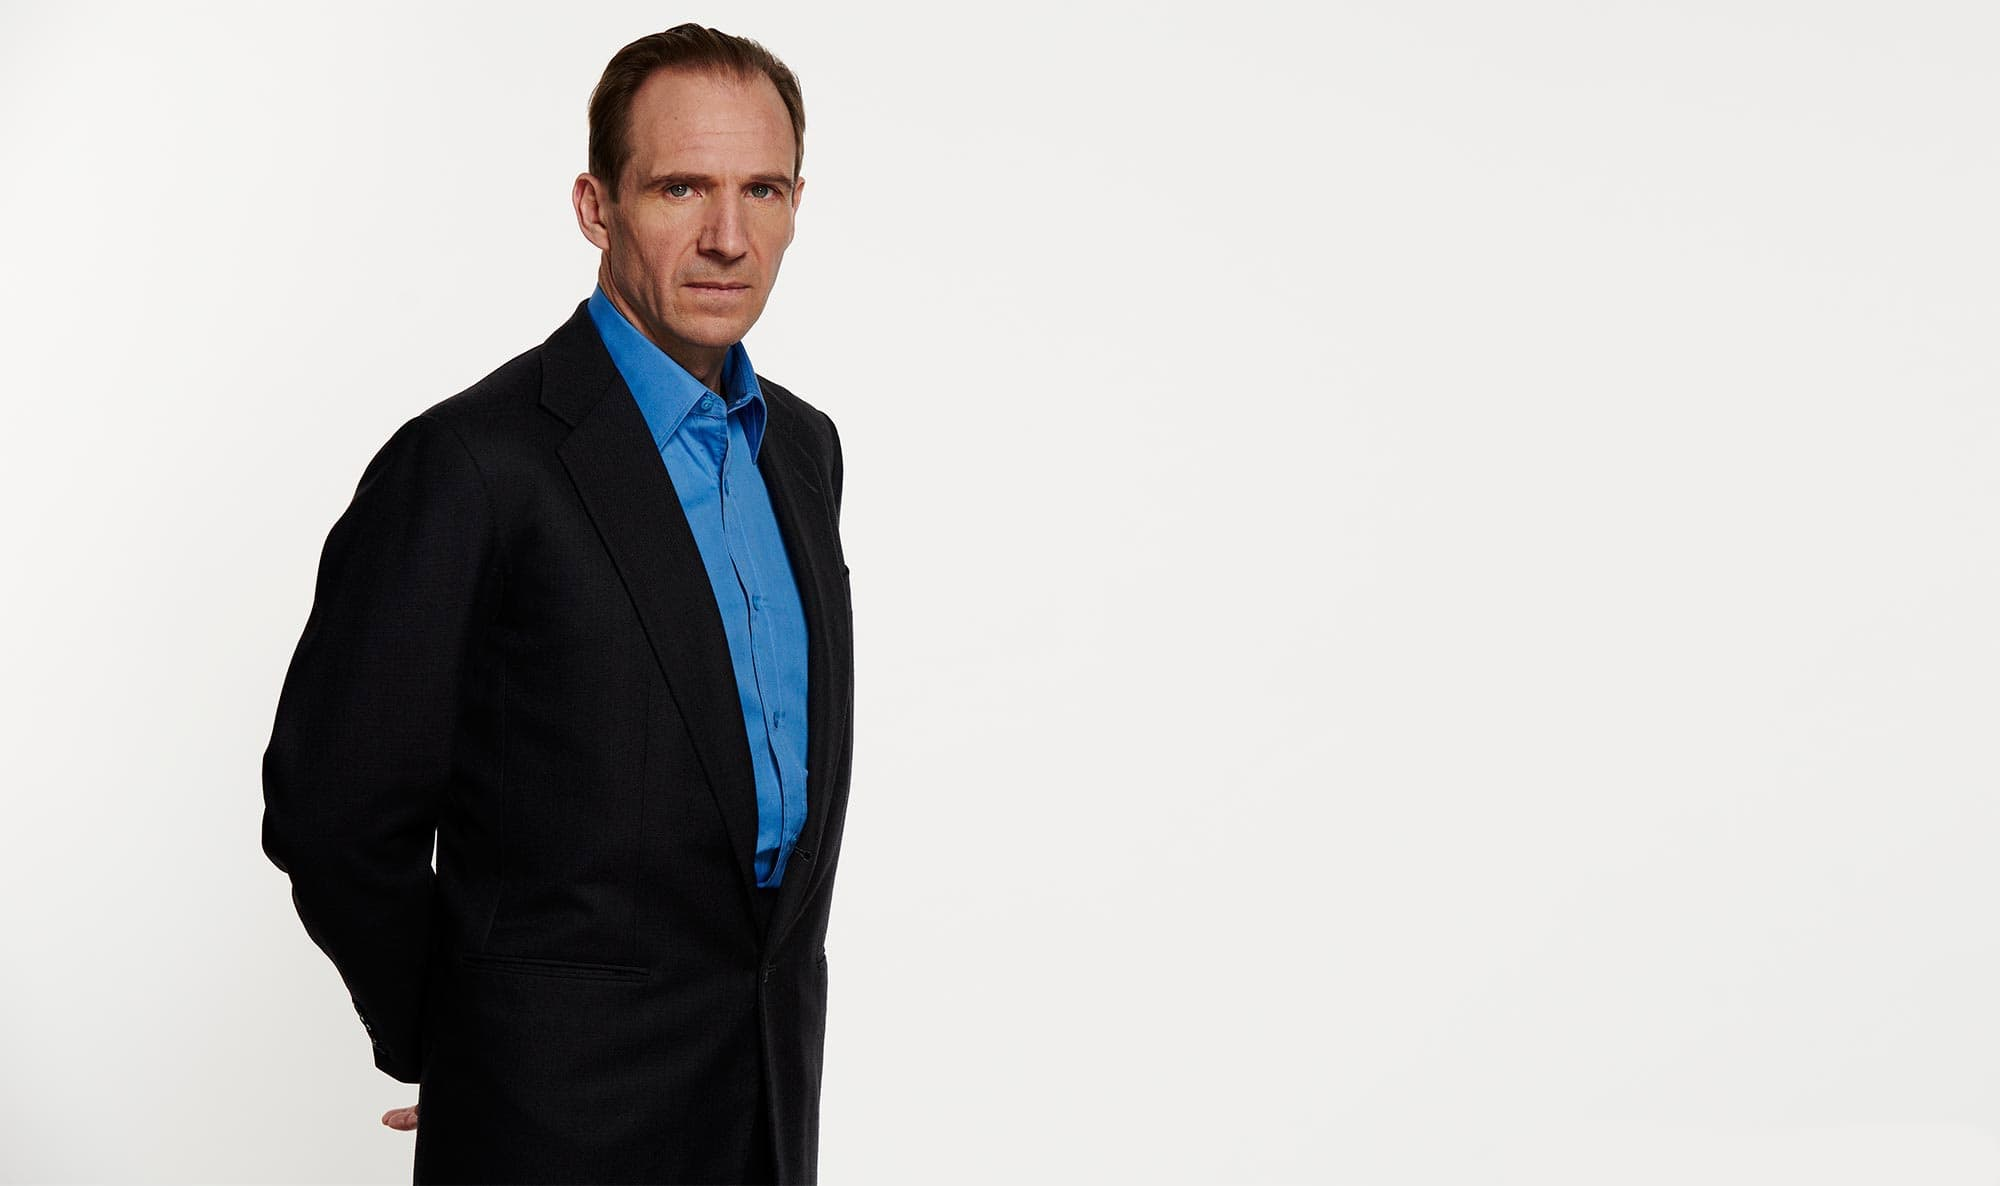 Ralph Fiennes Backgrounds